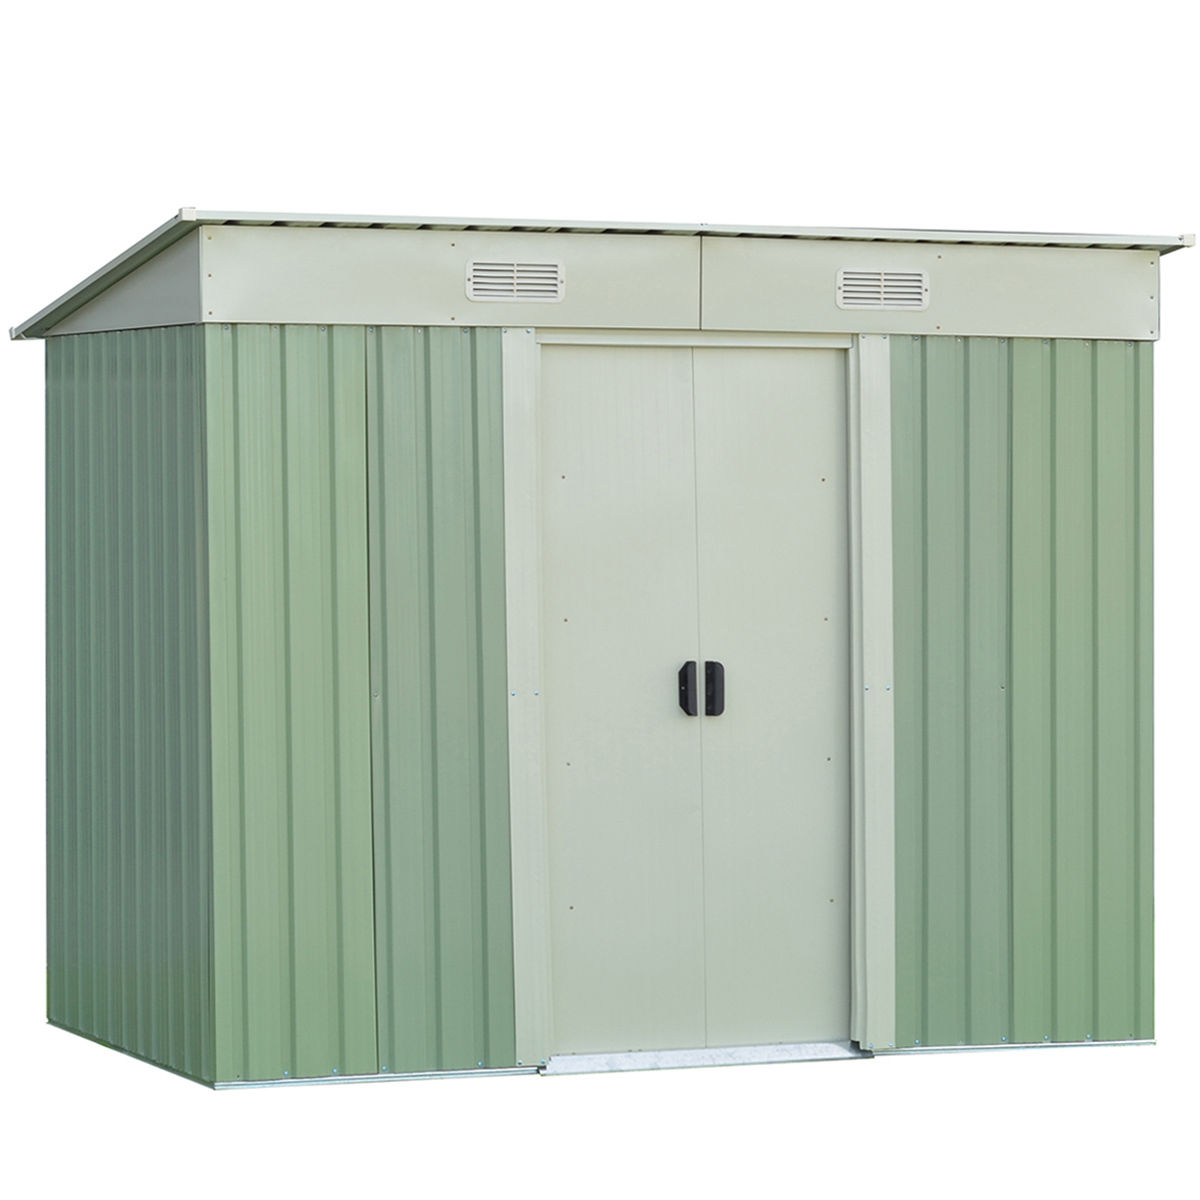 Costway 4 x8FT Outdoor Garden Storage Shed Tool House Sliding Door Steel Green